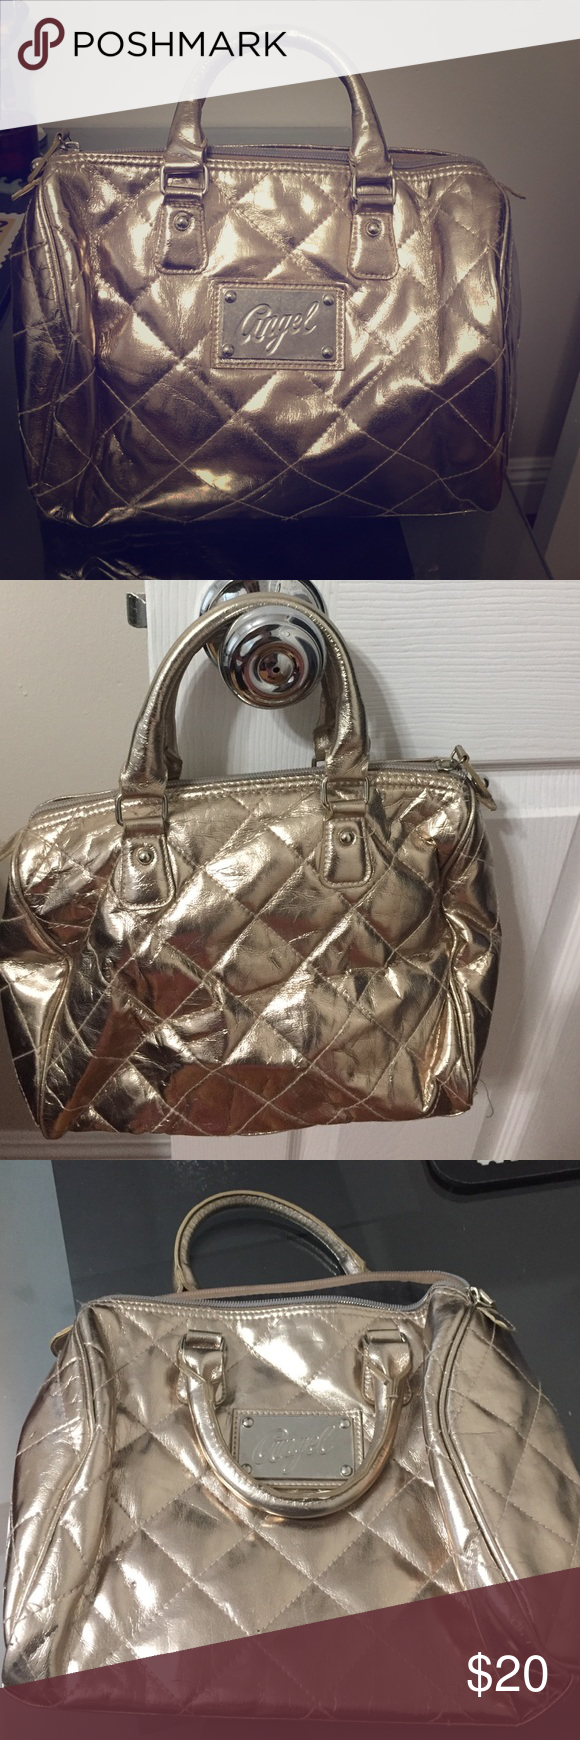 Victoria secret bag Gold Victoria secret bag. One large pocket. Great for traveling Victoria's Secret Bags Mini Bags